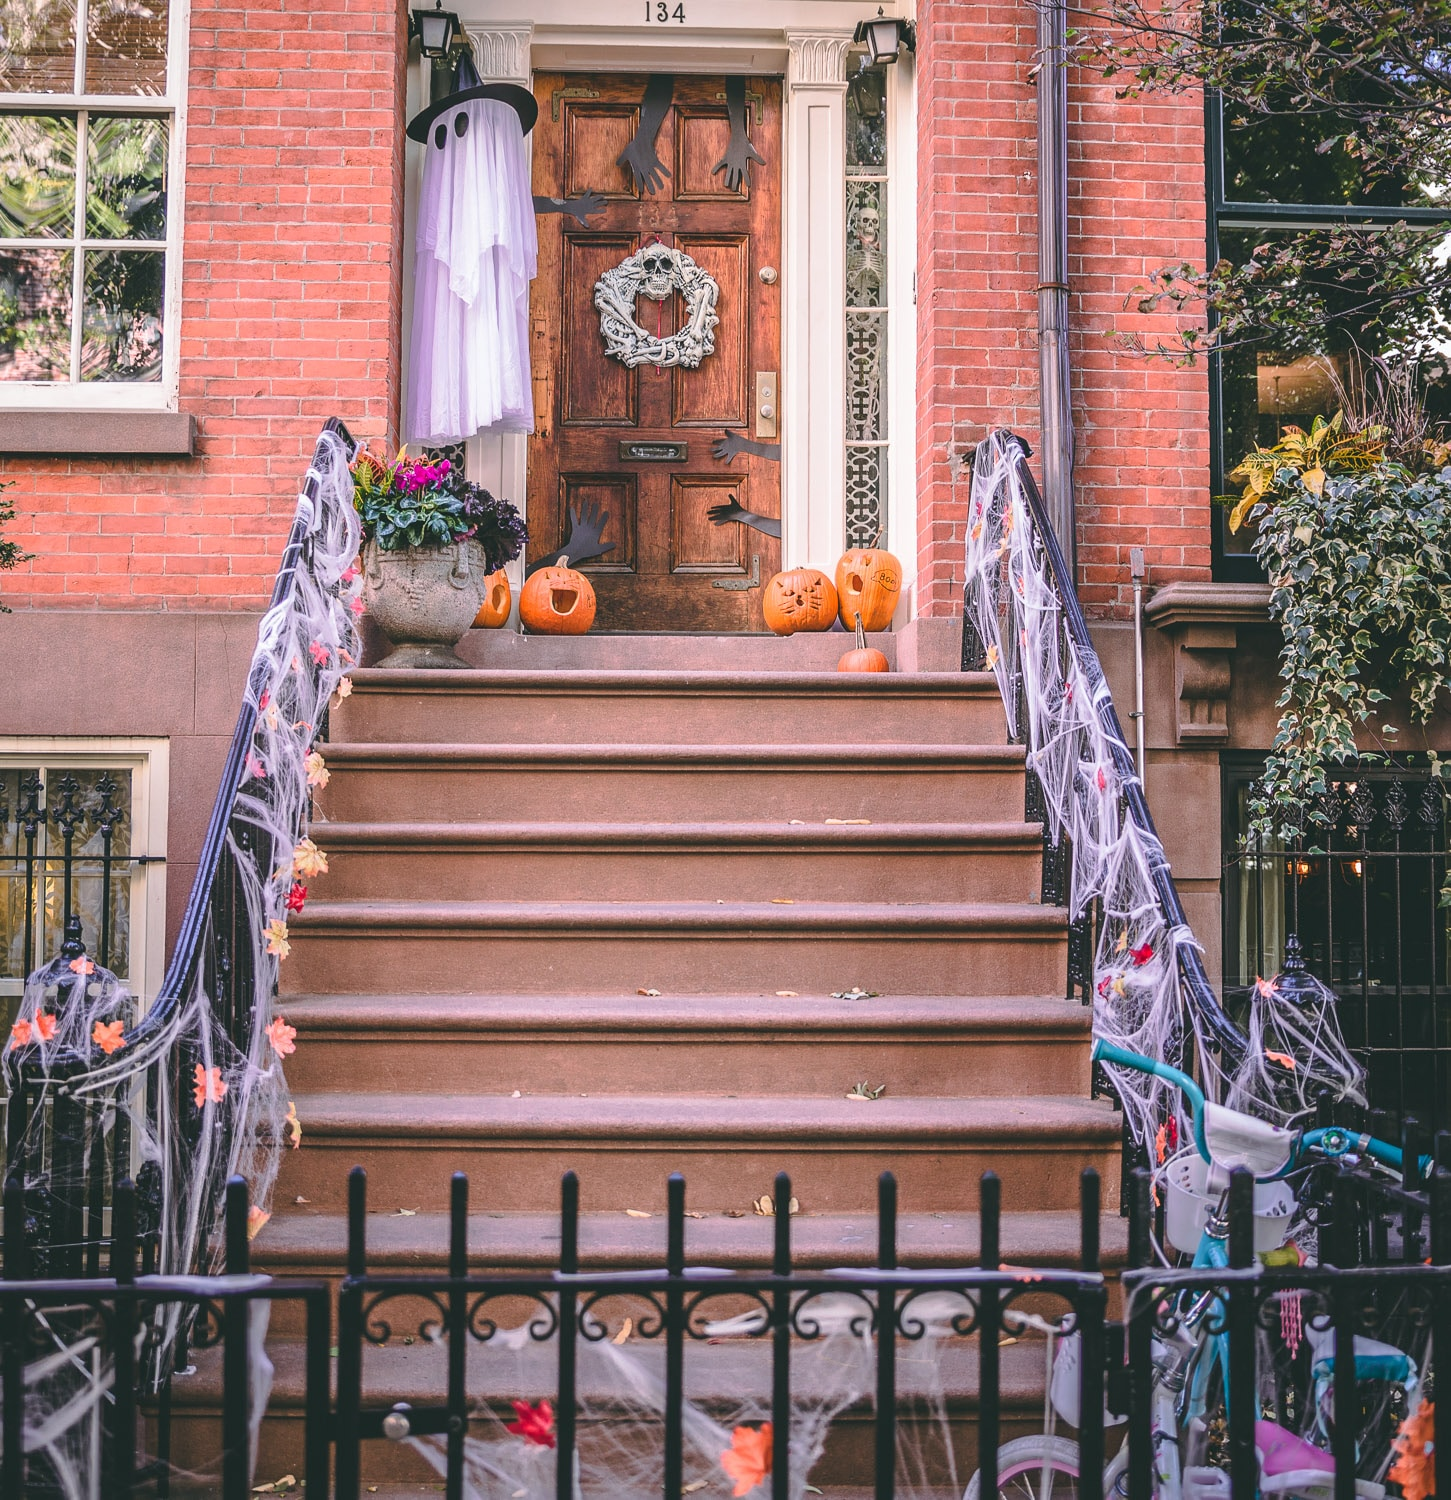 decoration-halloween-new-york-greenwich-village-manhattan Les décorations Halloween à New York, j'adore !